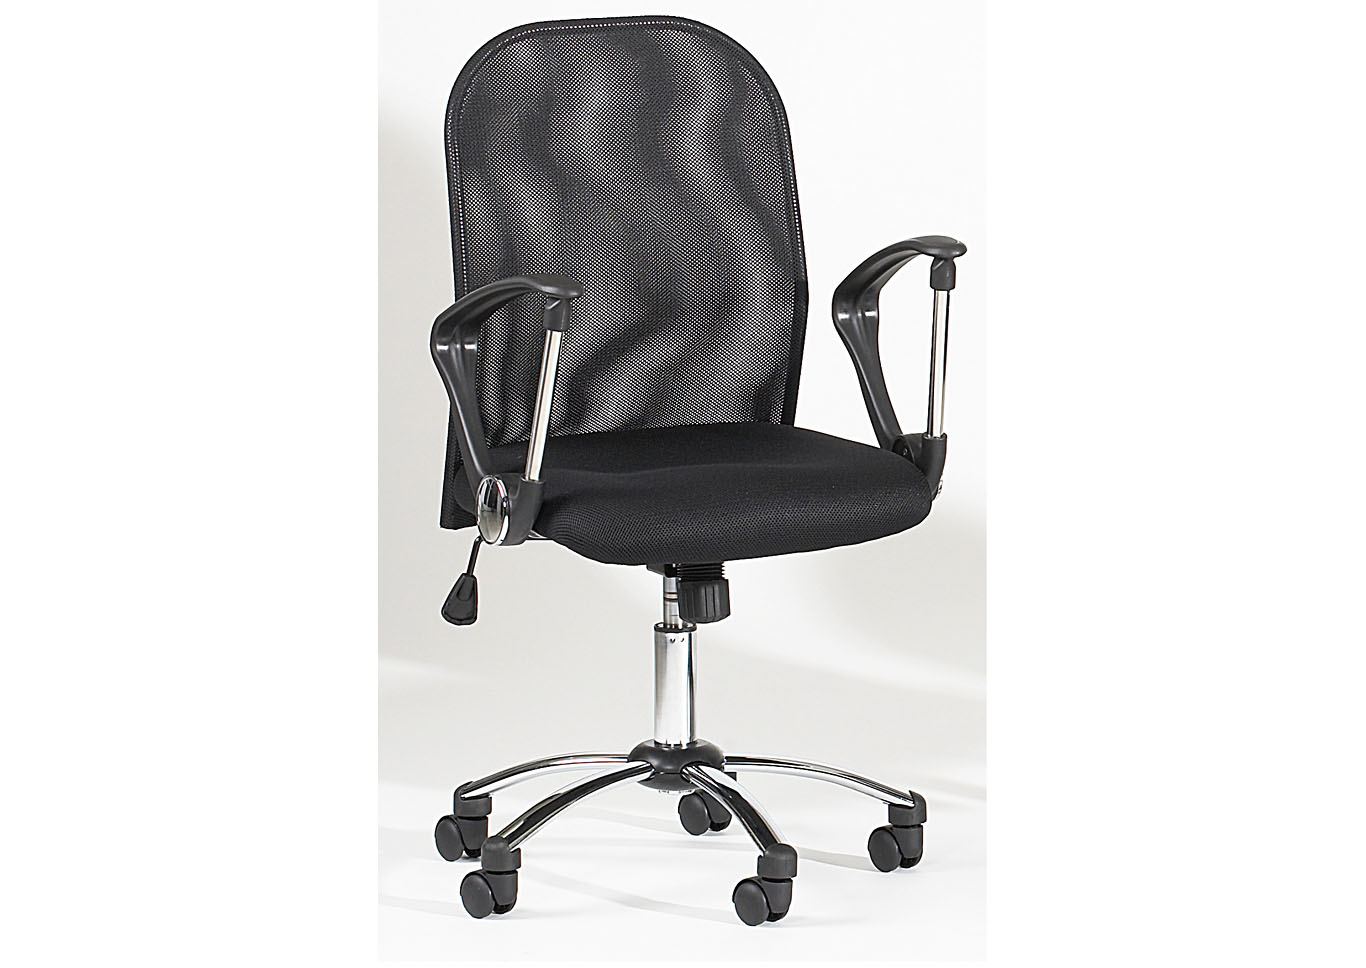 Chrome Height-Adjustable Swivel Computer Chair W/ Mesh Back,Chintaly Imports